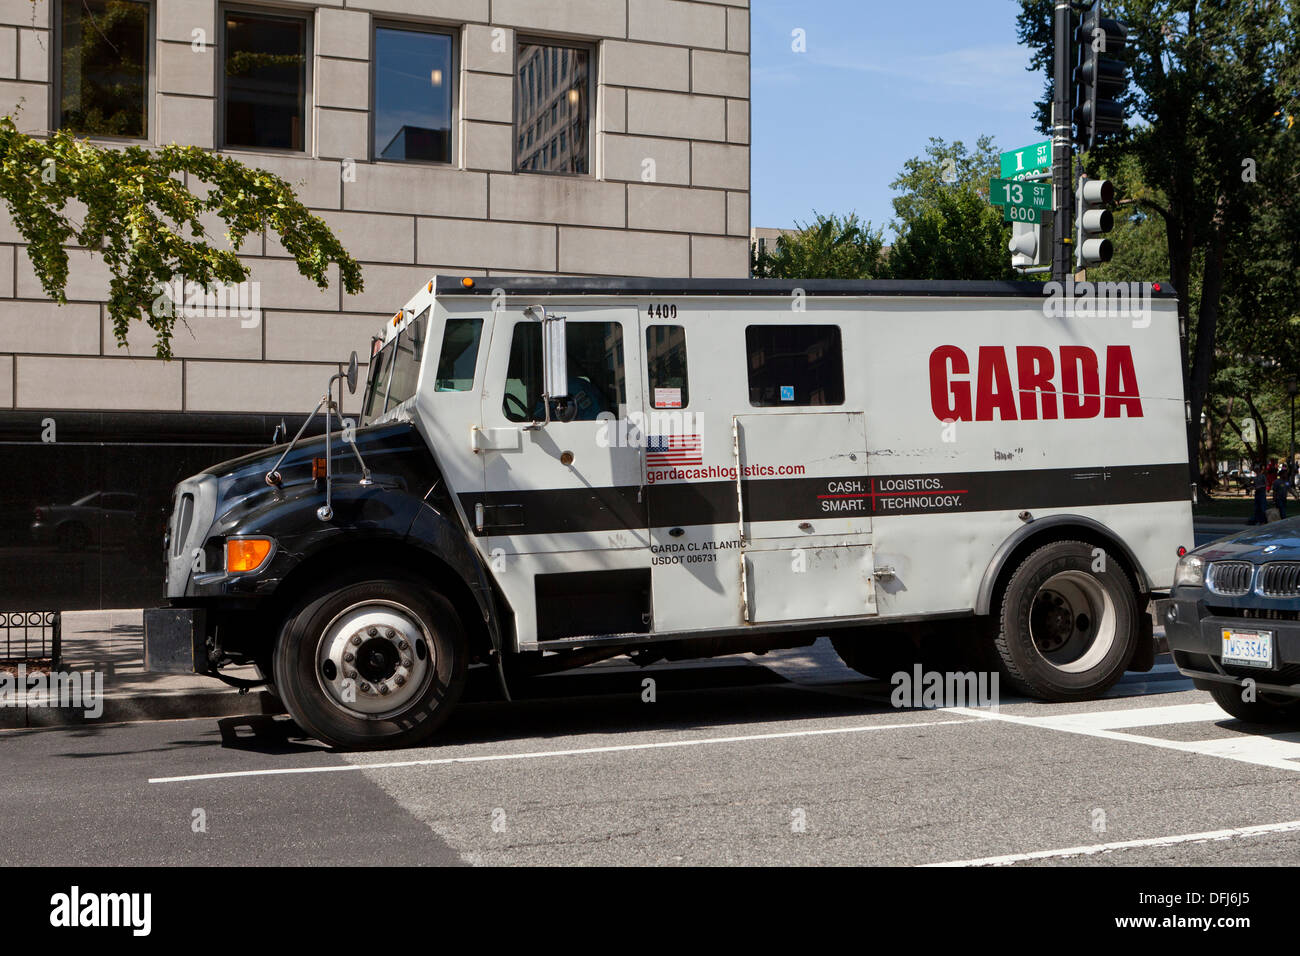 Garda armored truck Stock Photo, Royalty Free Image: 61251293 - Alamy